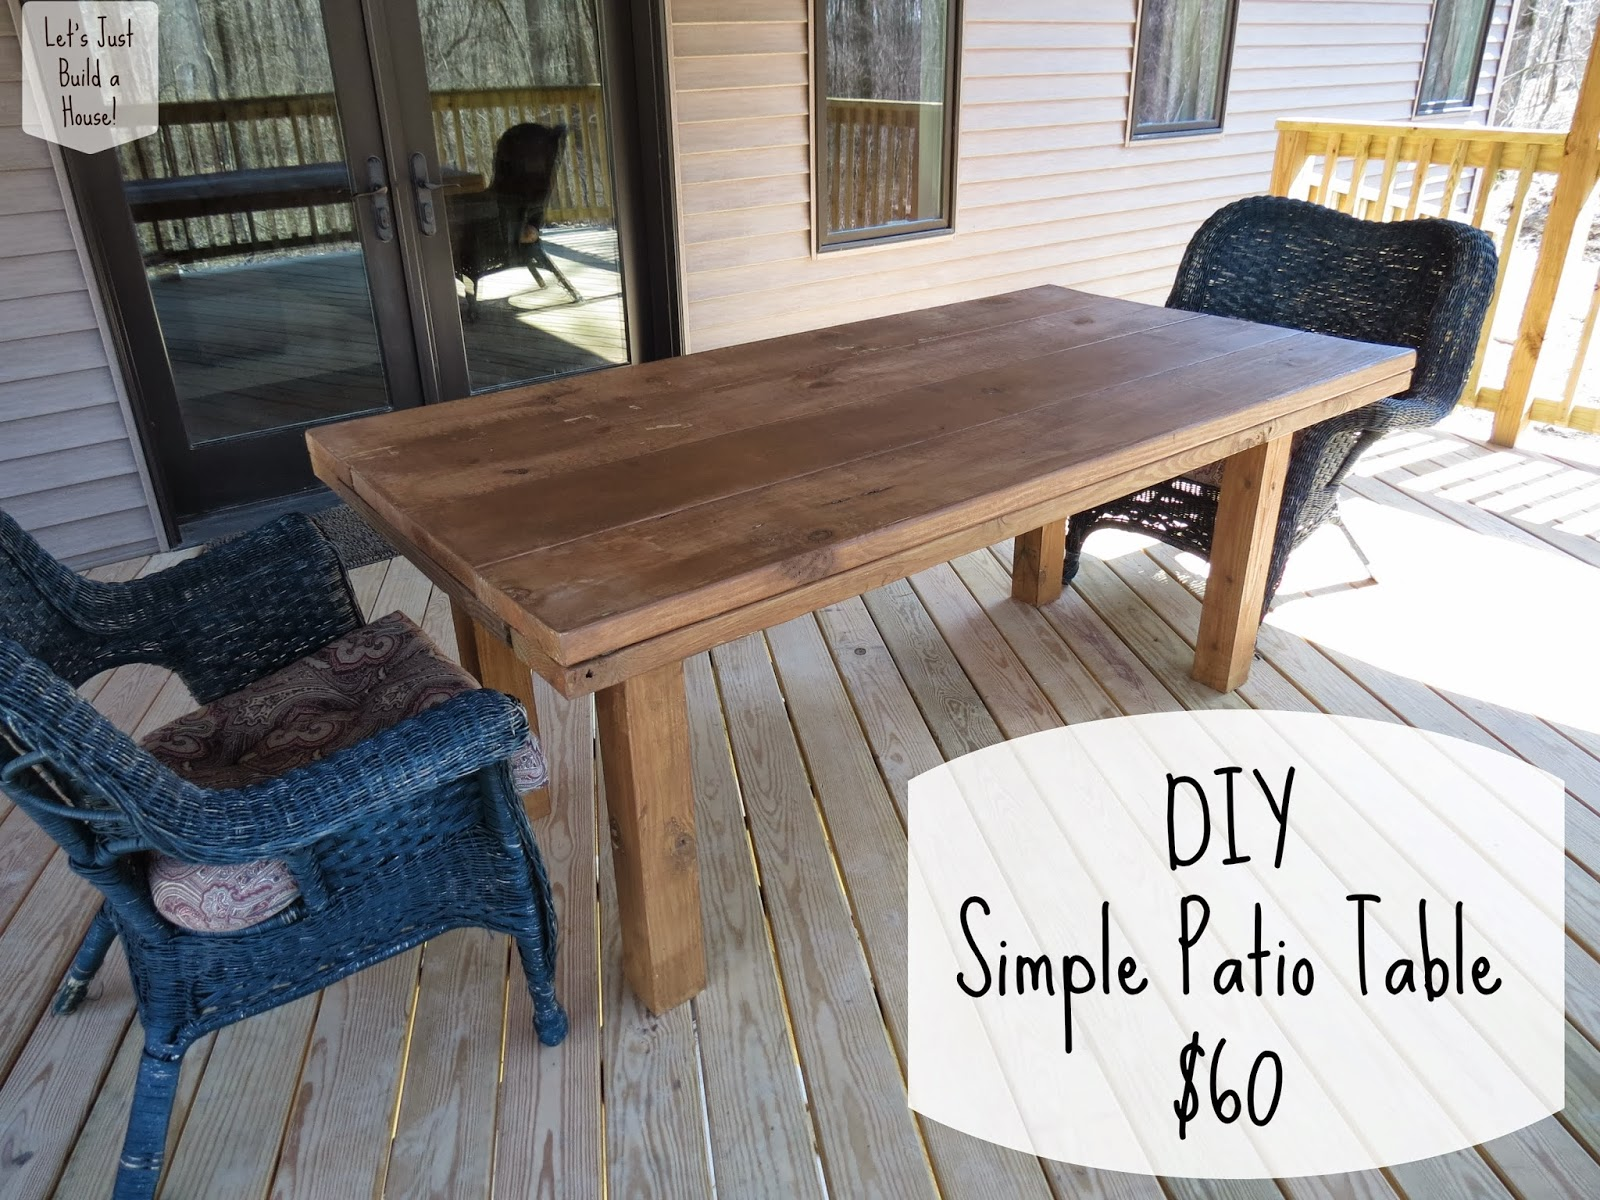 Let's Just Build a House!: DIY Simple Patio Table ...